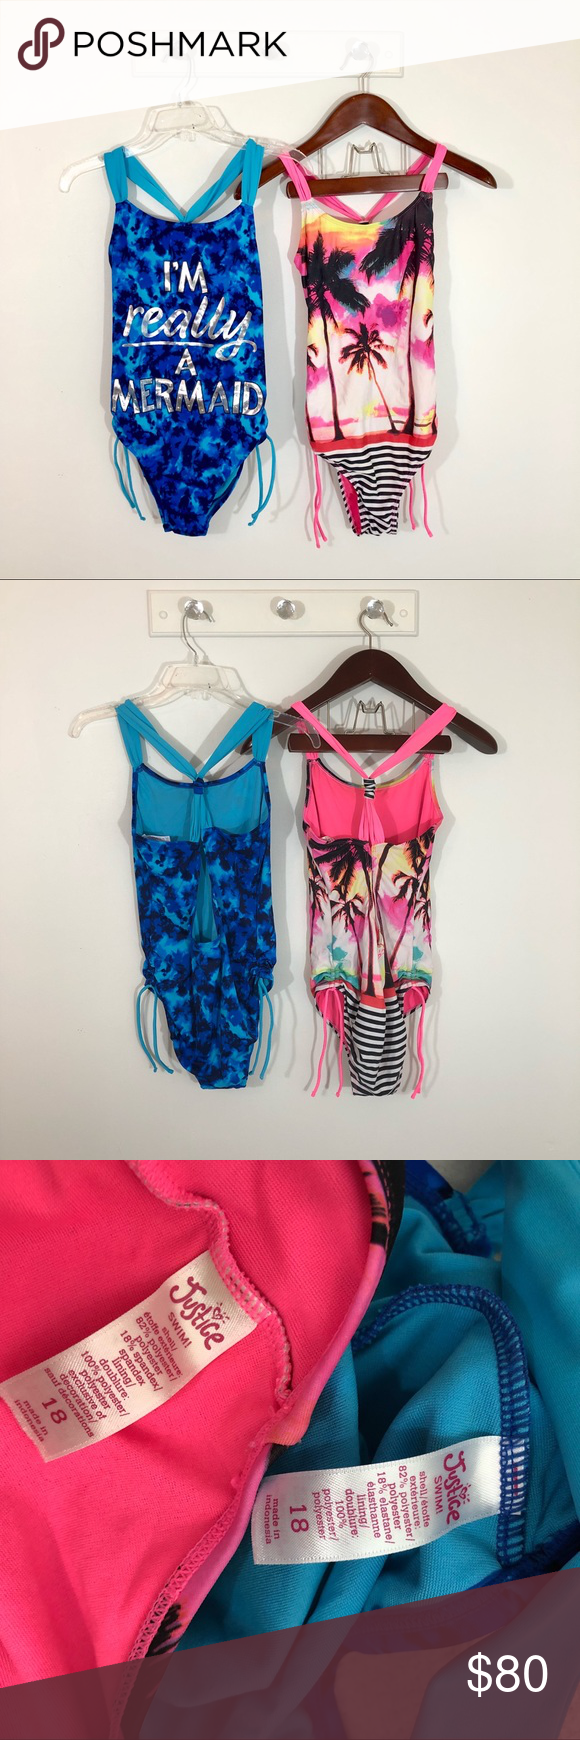 a6fd5ea0b85 Justice One Piece Swimsuit Bundle Two Lot Swim 18 Both size 18 Two one  piece swimsuits Mermaid script has some light cracking Striped has some  wear on ...